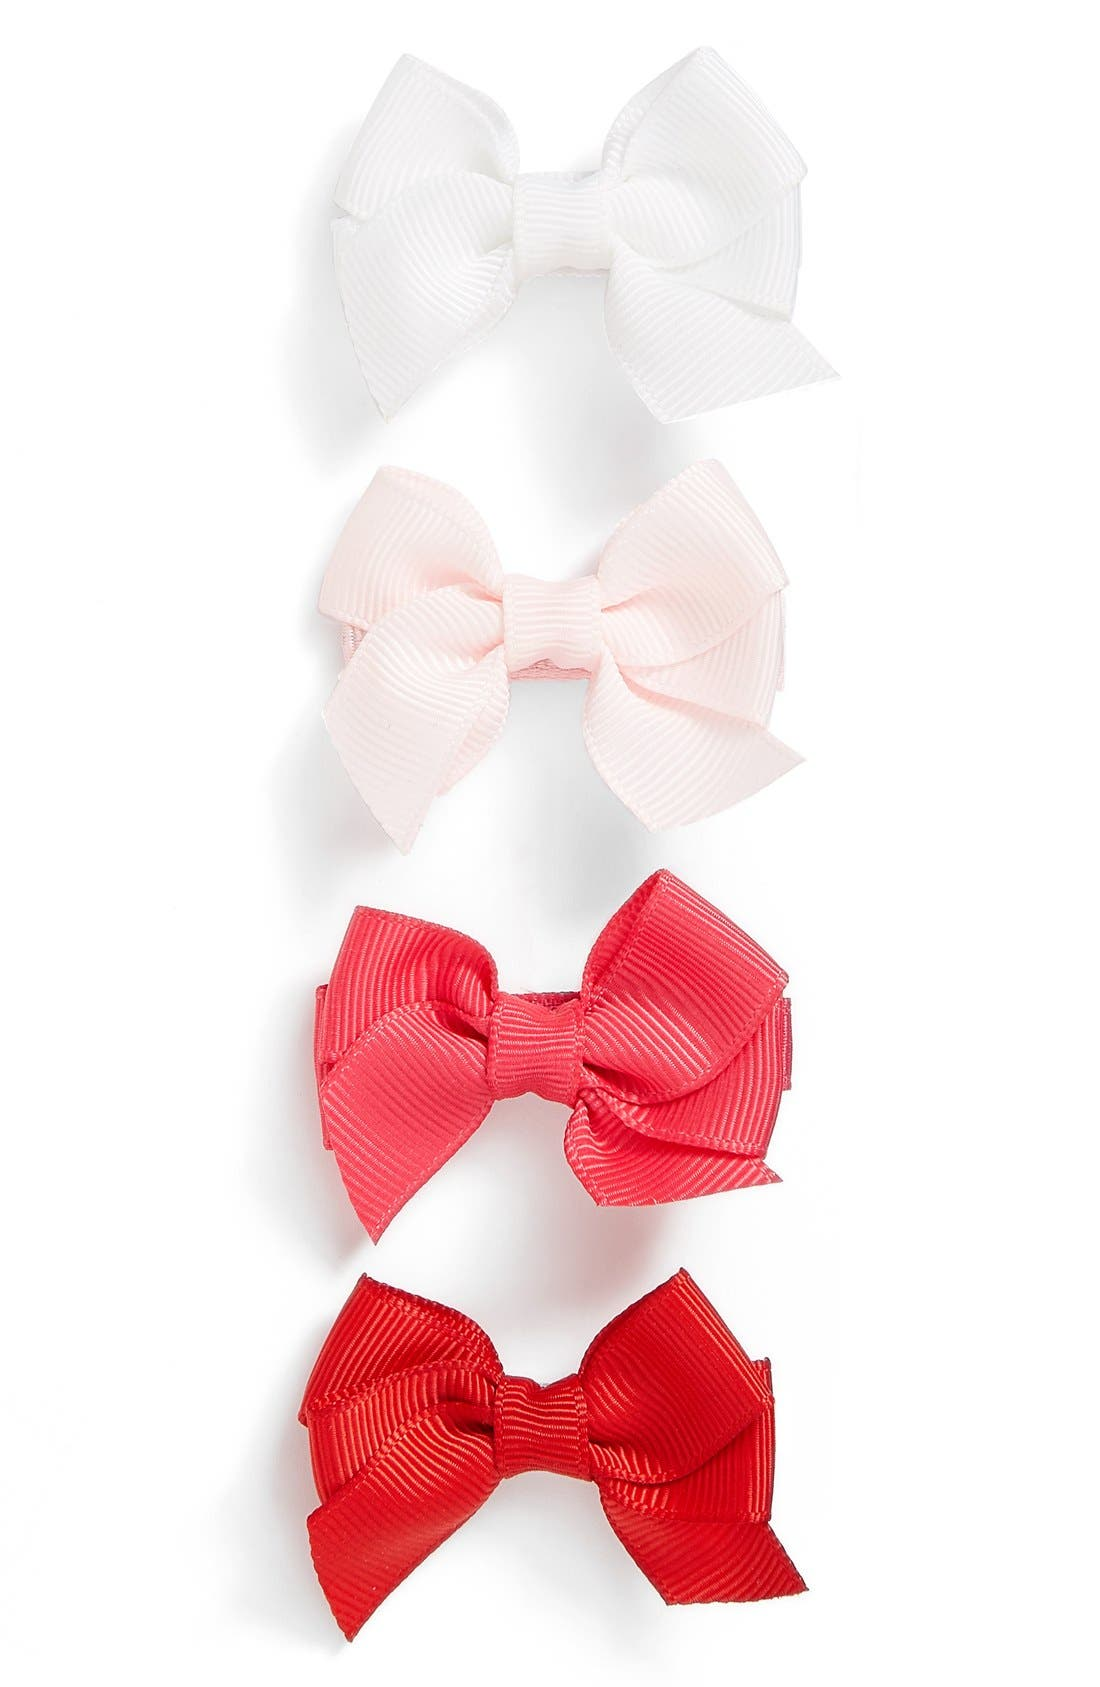 Alternate Image 1 Selected - PLH Bows & Laces Bow Clips (Set of 4) (Baby Girls)